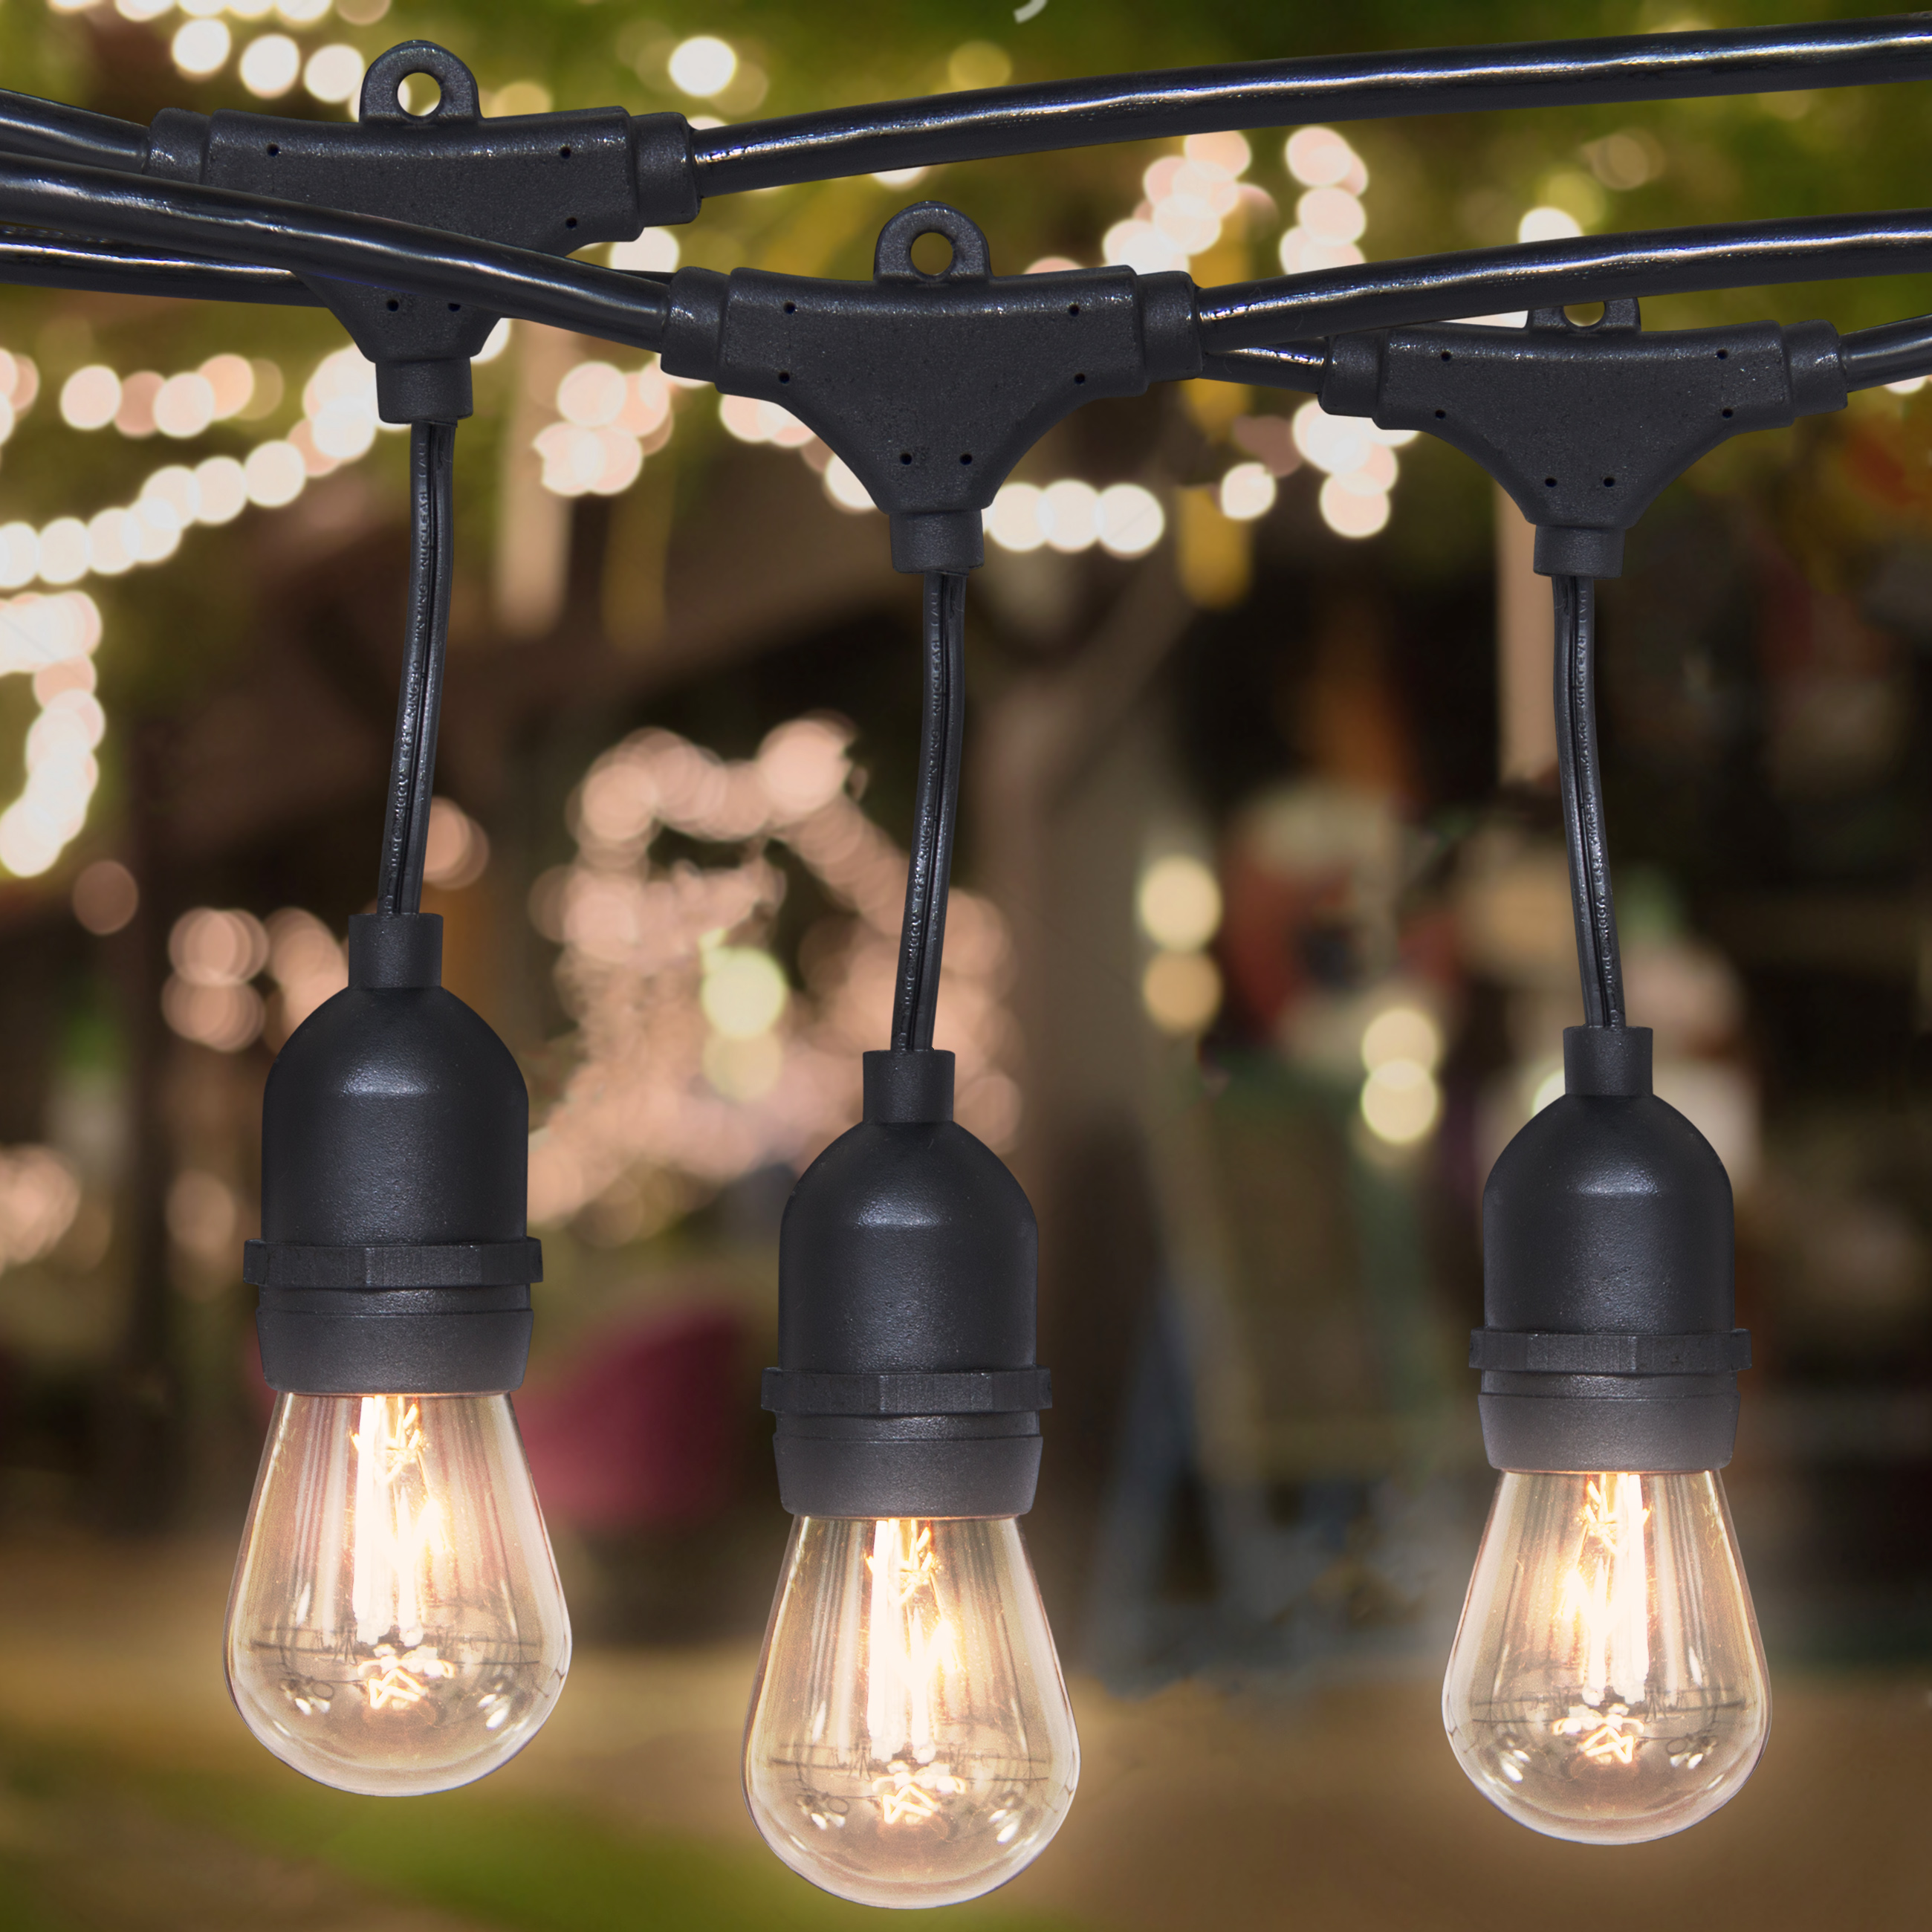 Best Choice Products 48ft Commercial Weatherproof Outdoor String Lights For  Party, Restaurant, Patio Lights